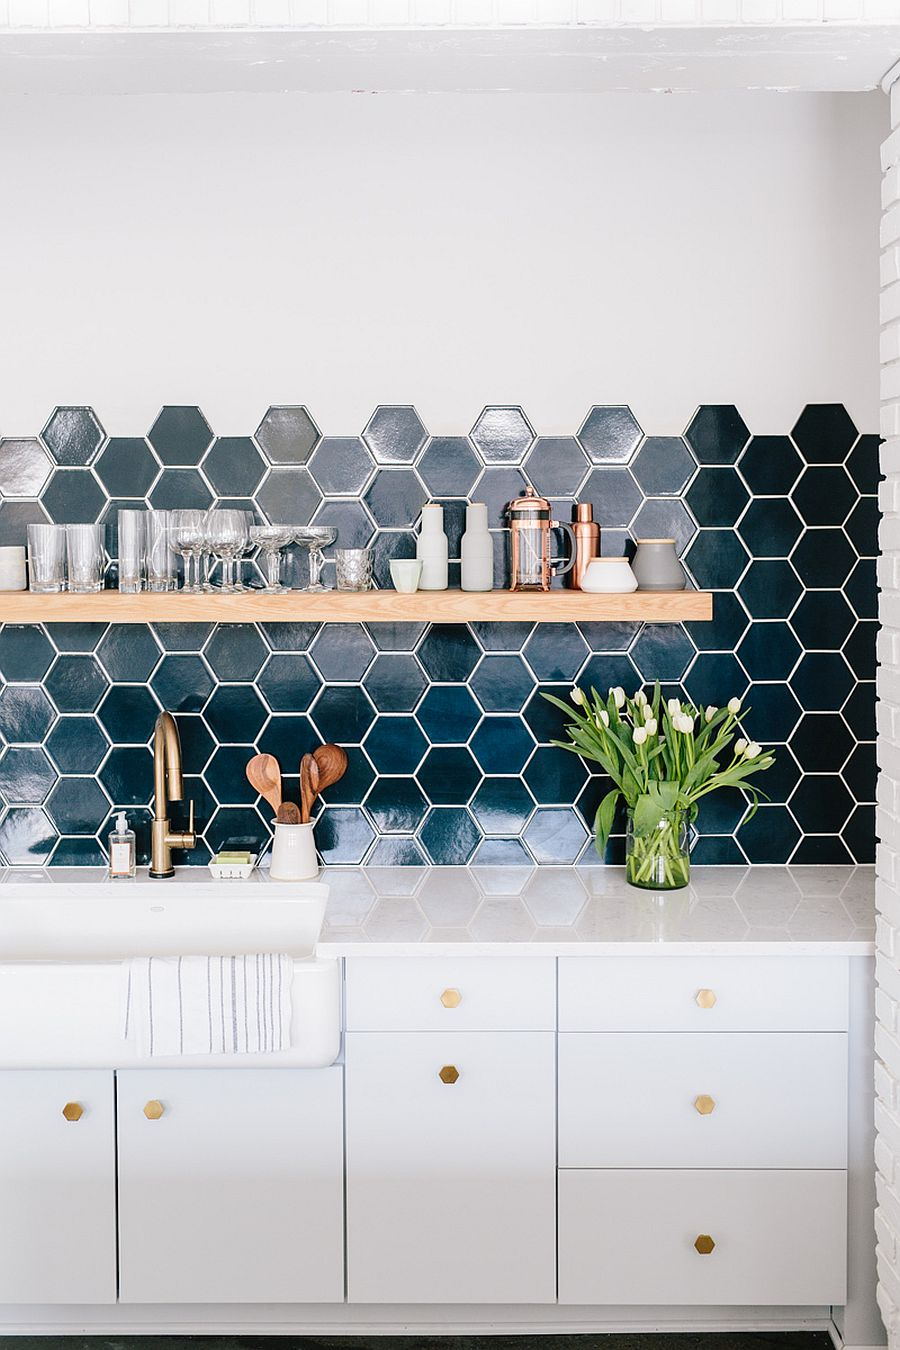 Green Wall Kitchen Tiles